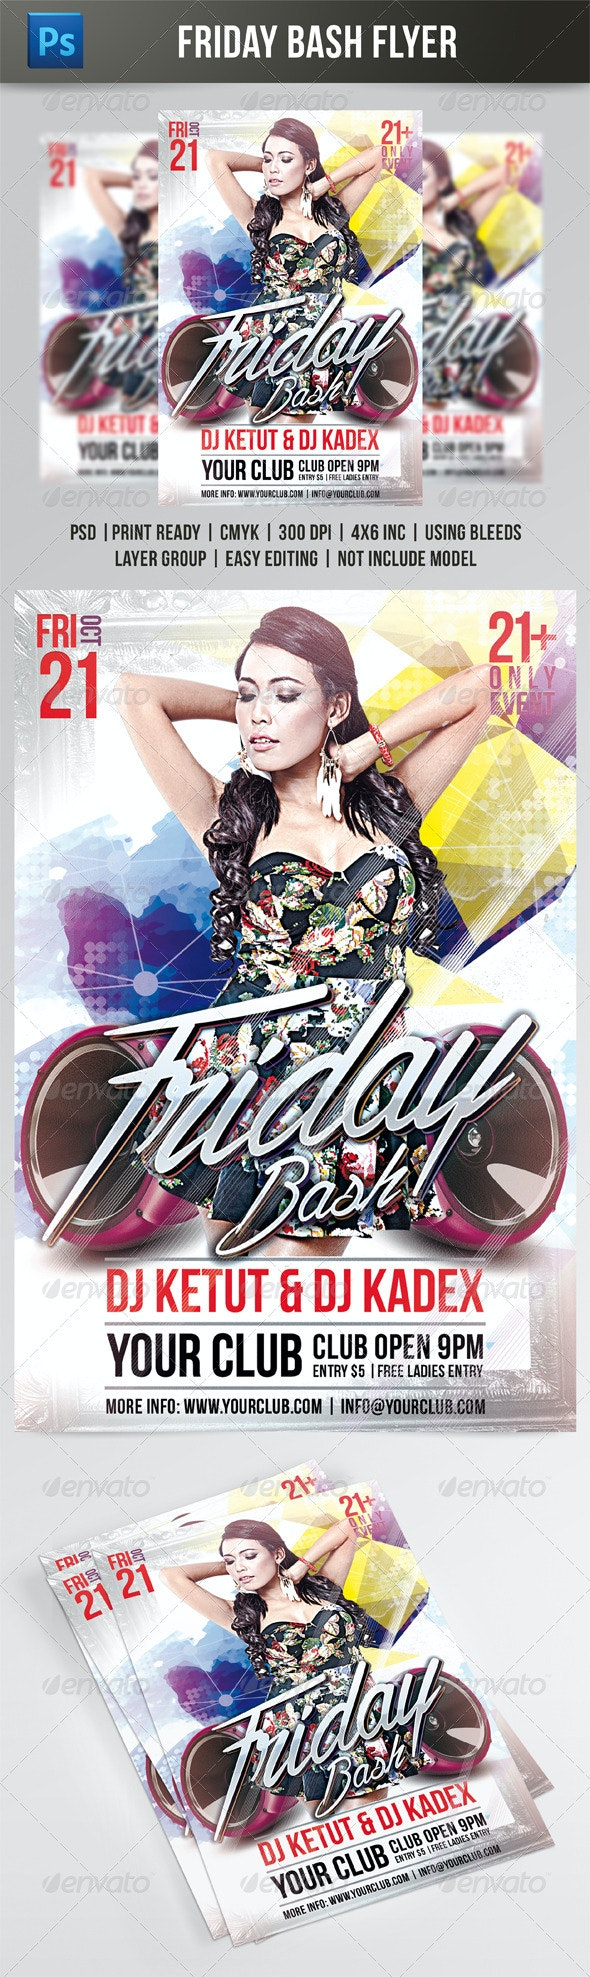 FRIDAY BASH FLYER TEMPLATE - Clubs & Parties Events